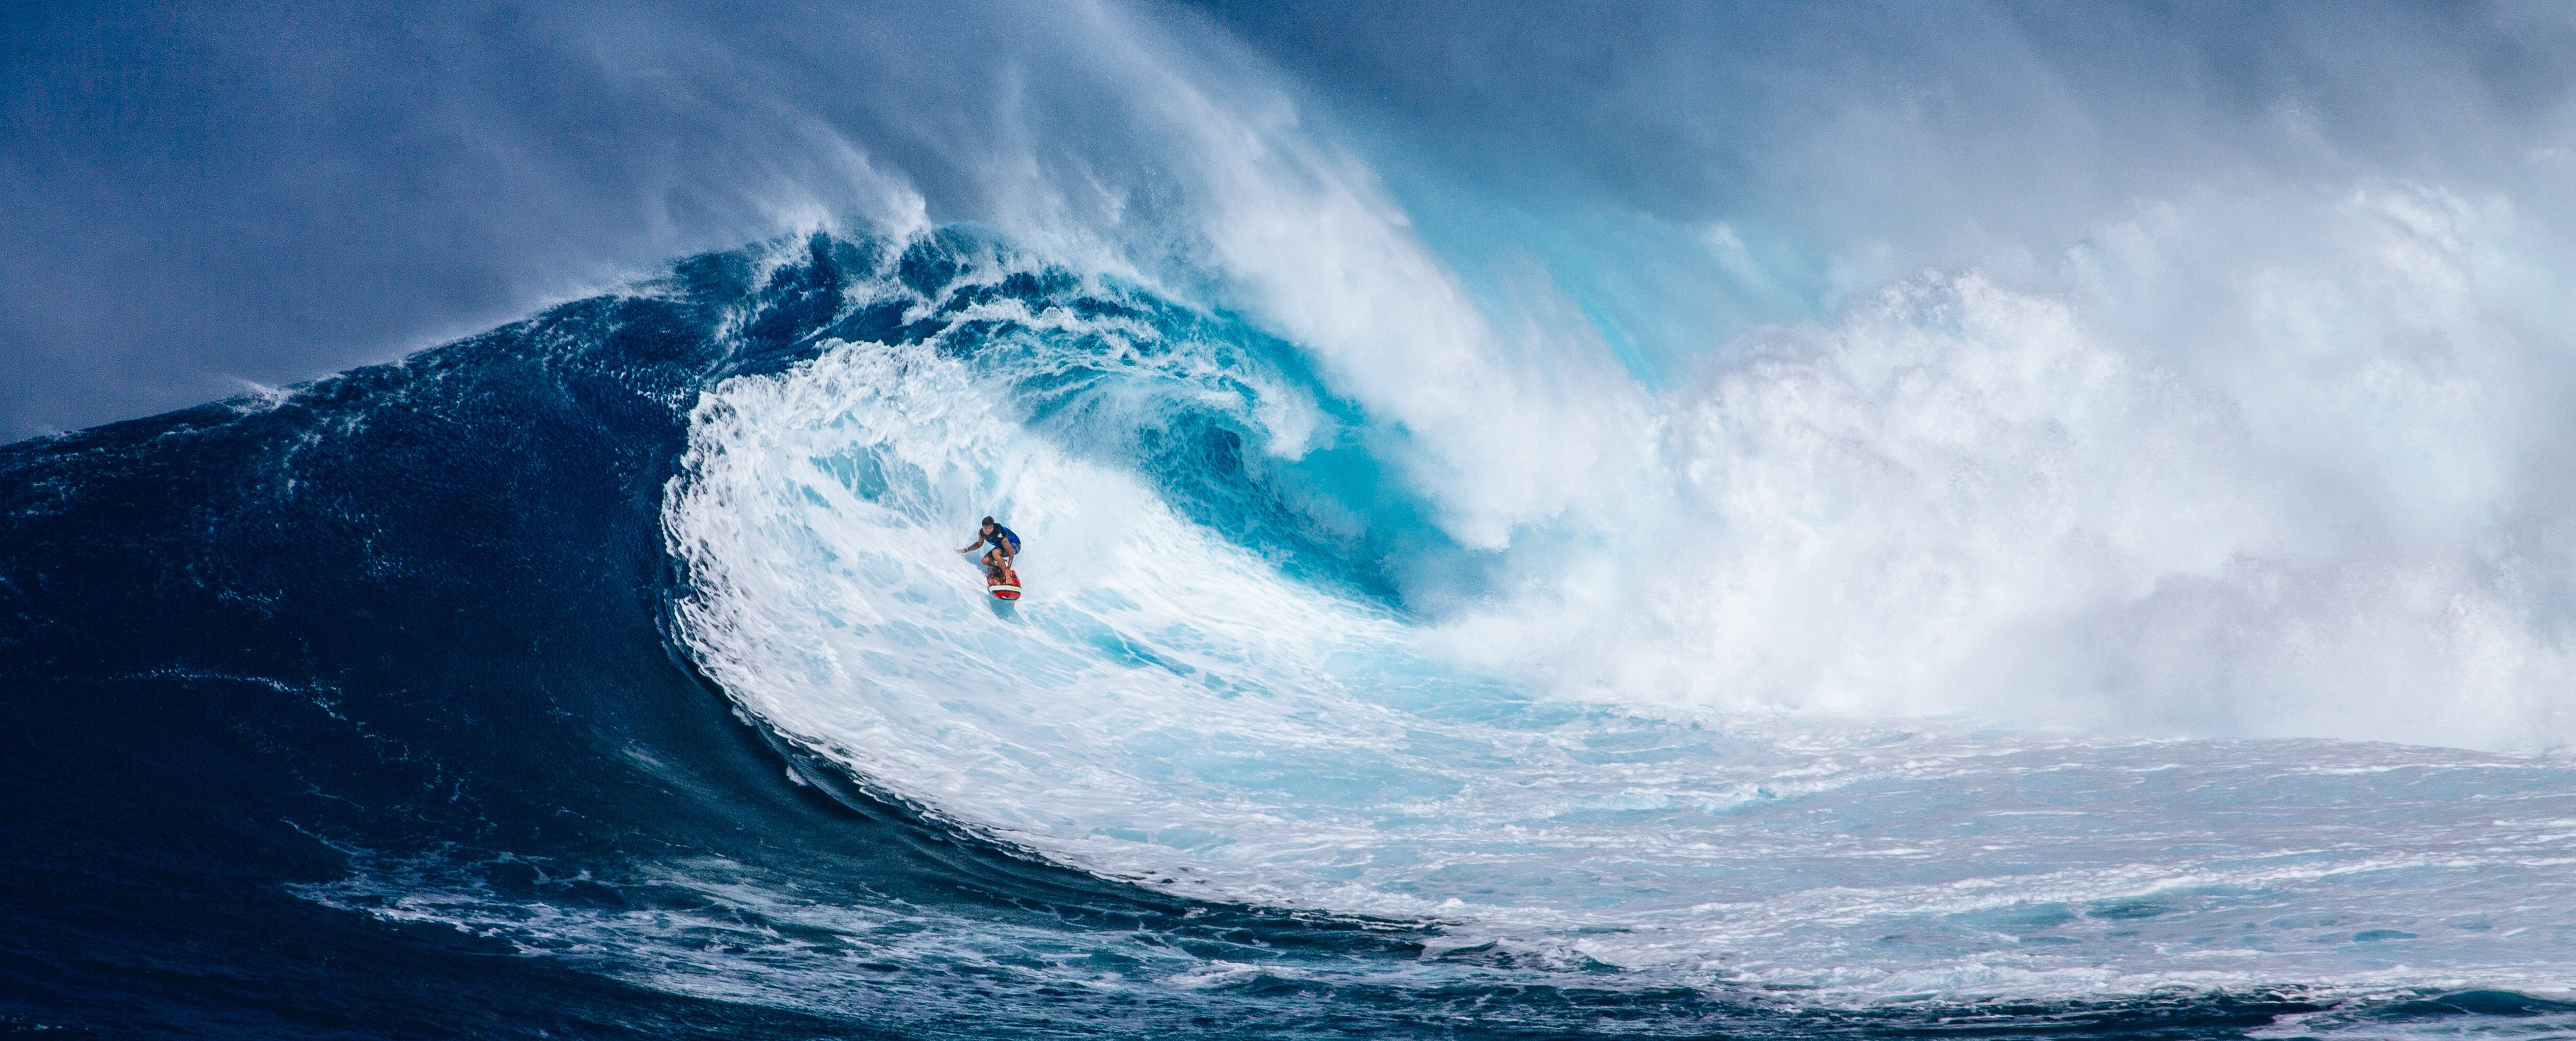 75168 download wallpaper Sports, Waves, Serfing, Surfer, Hawaii screensavers and pictures for free